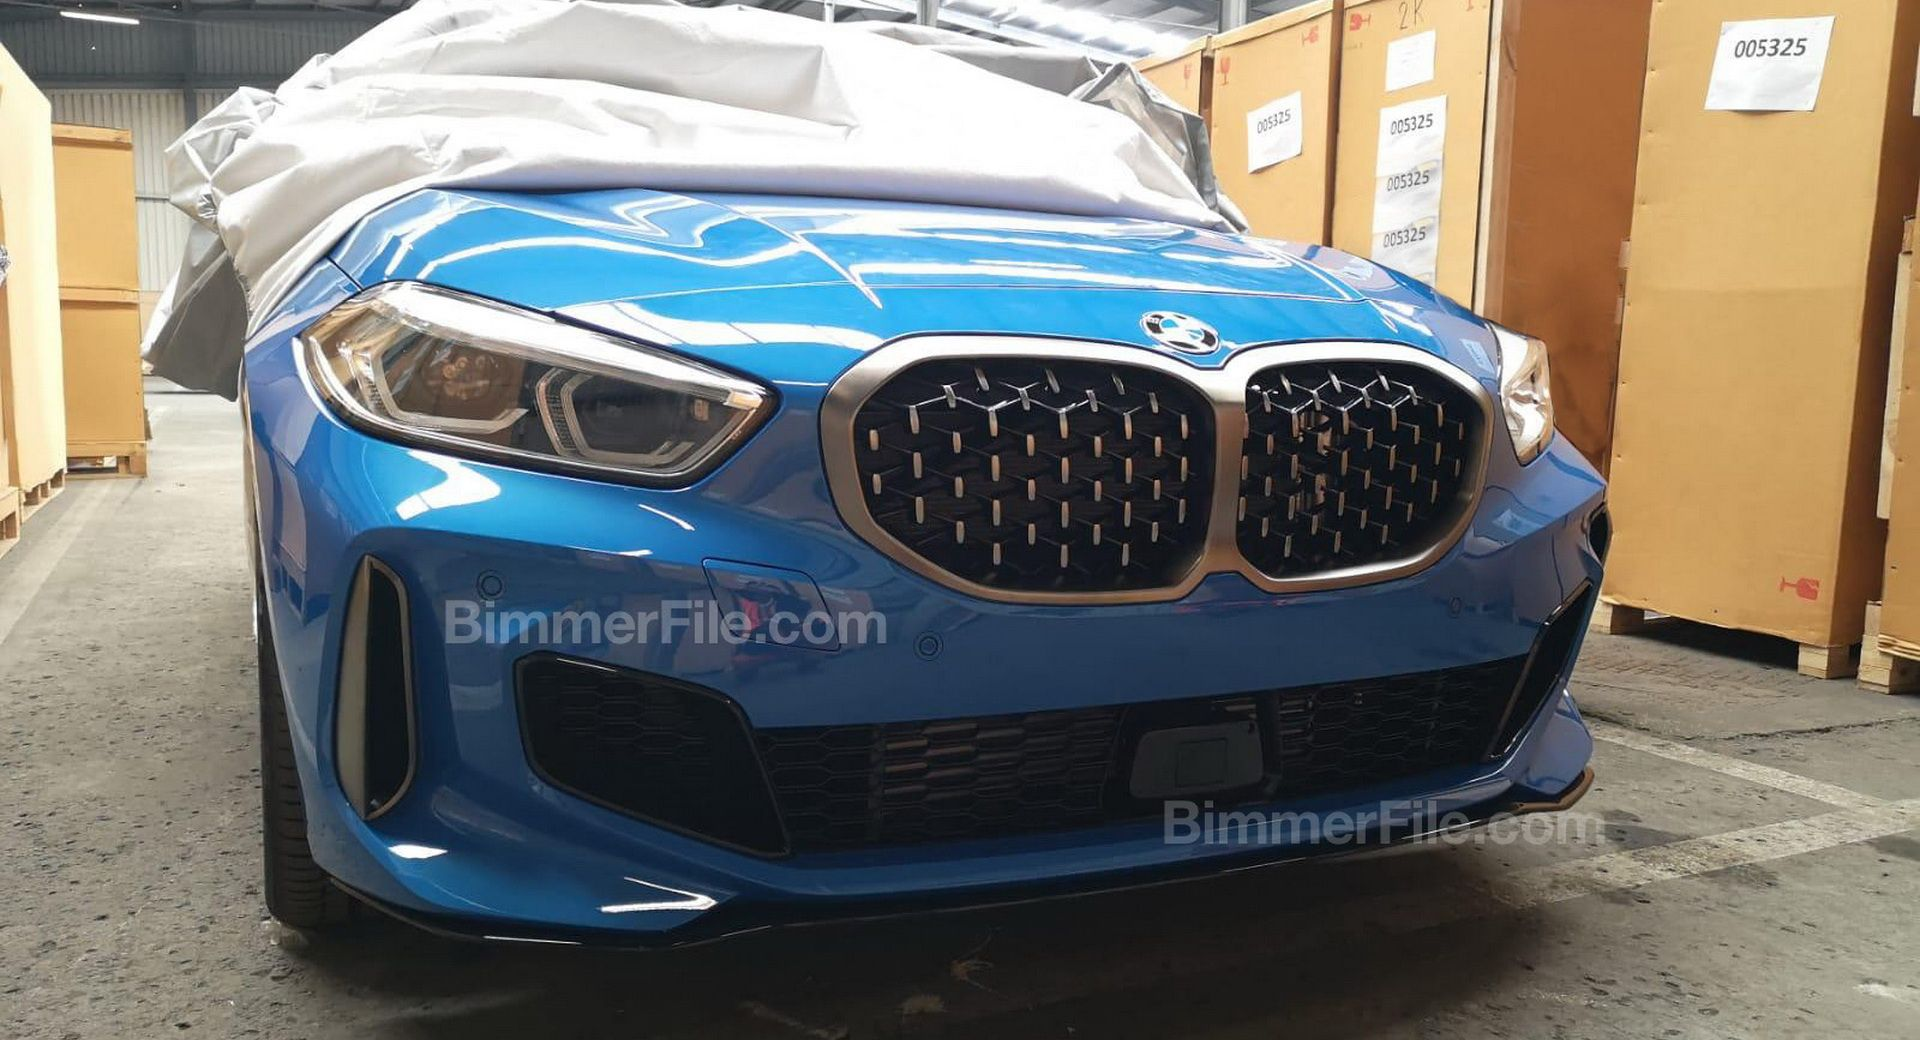 2020 Bmw M135i Xdrive Before The Time 302hp Hot Hatch This Is Our